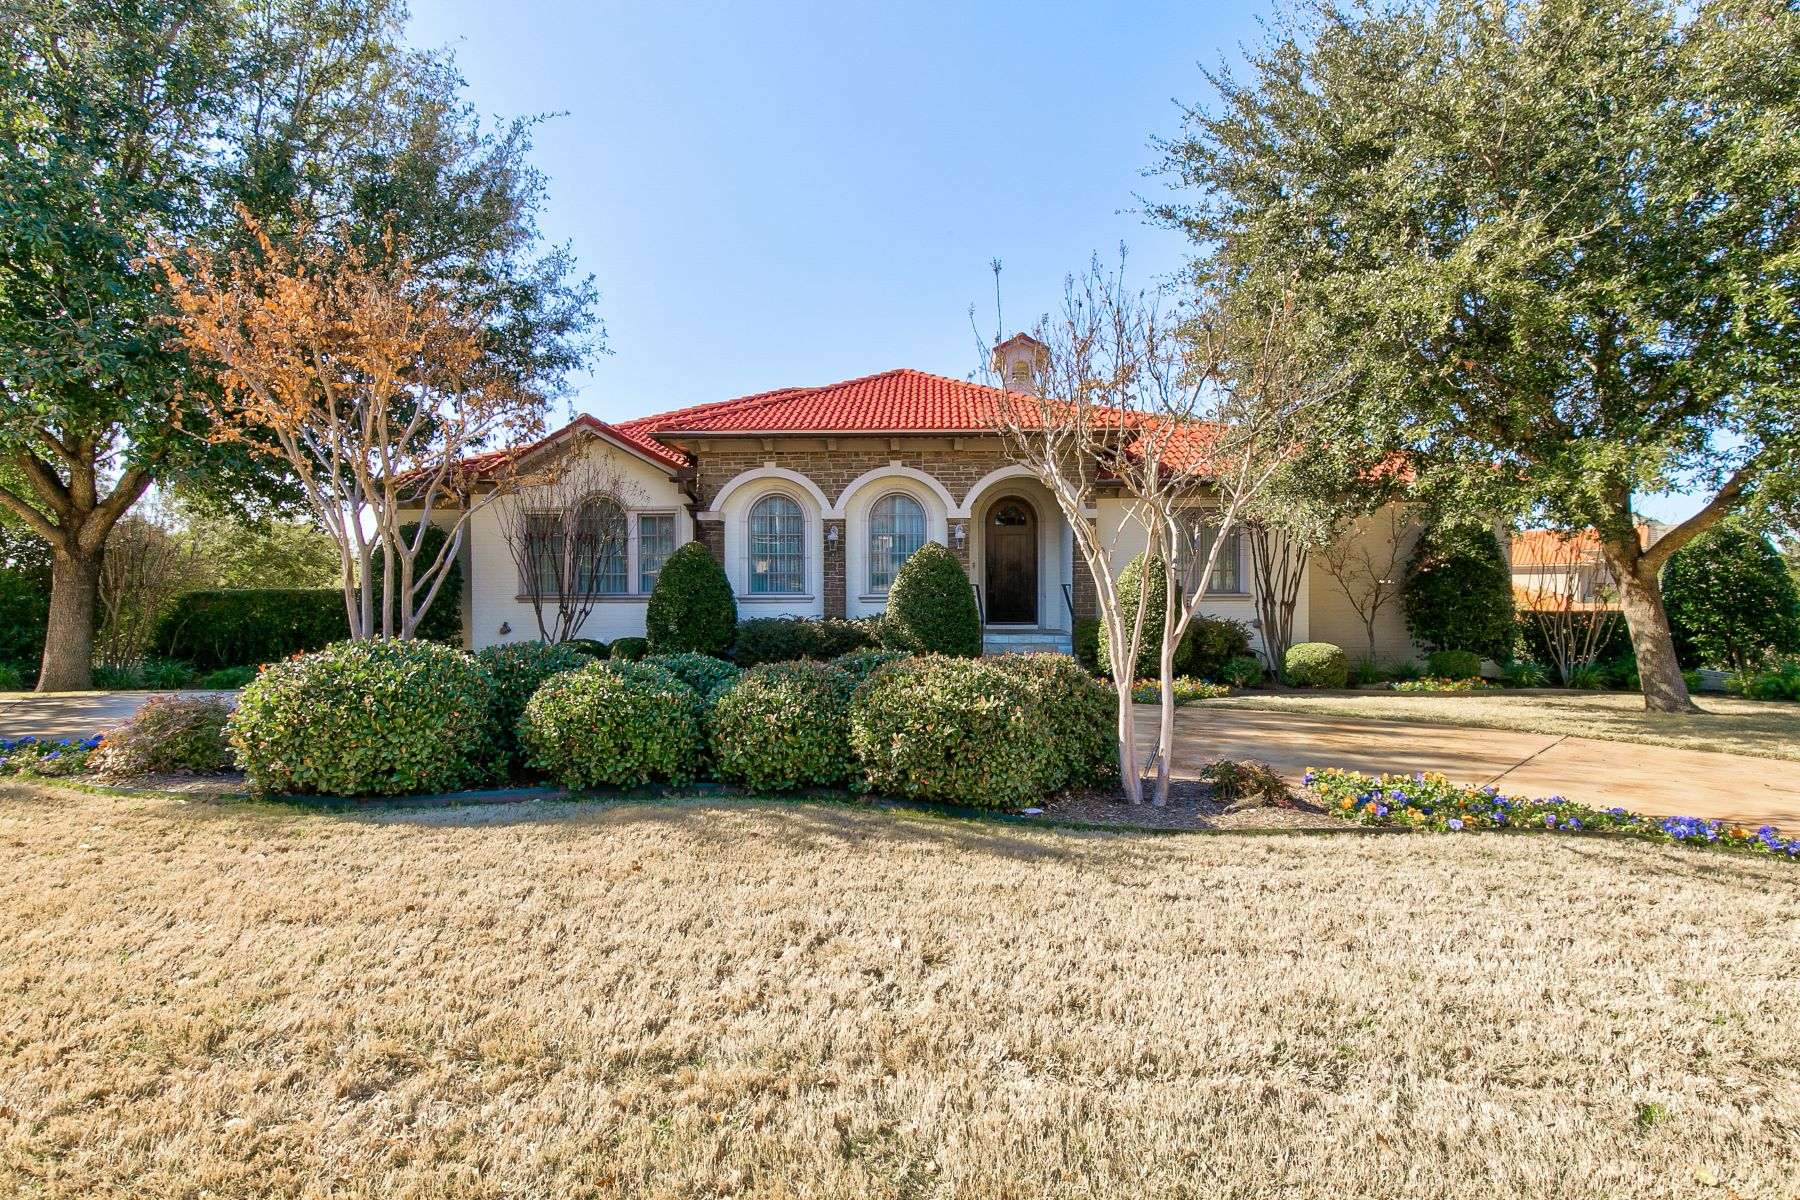 Single Family Homes for Active at A Mediterranean Beauty That Won't Disappoint 6600 Cherry Hills Drive Fort Worth, Texas 76132 United States